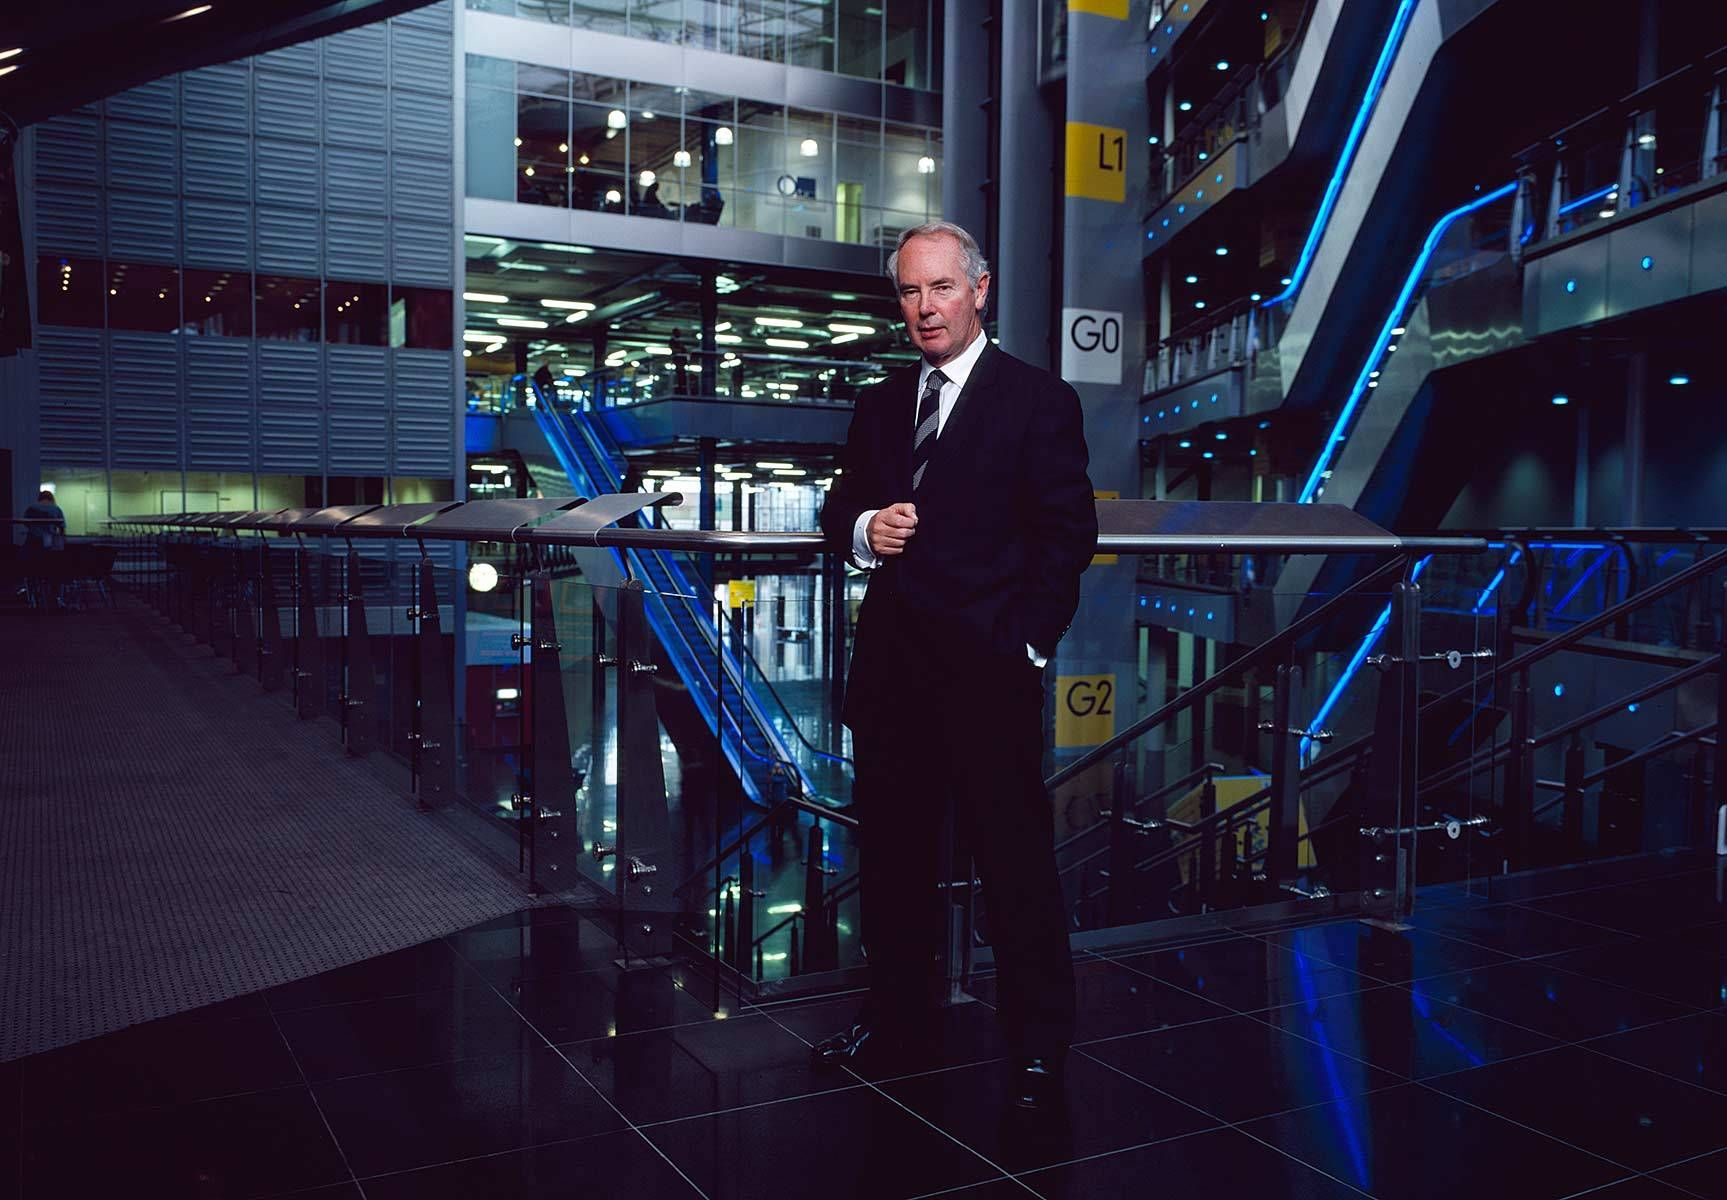 Sir Peter Ripley-Millenium Point